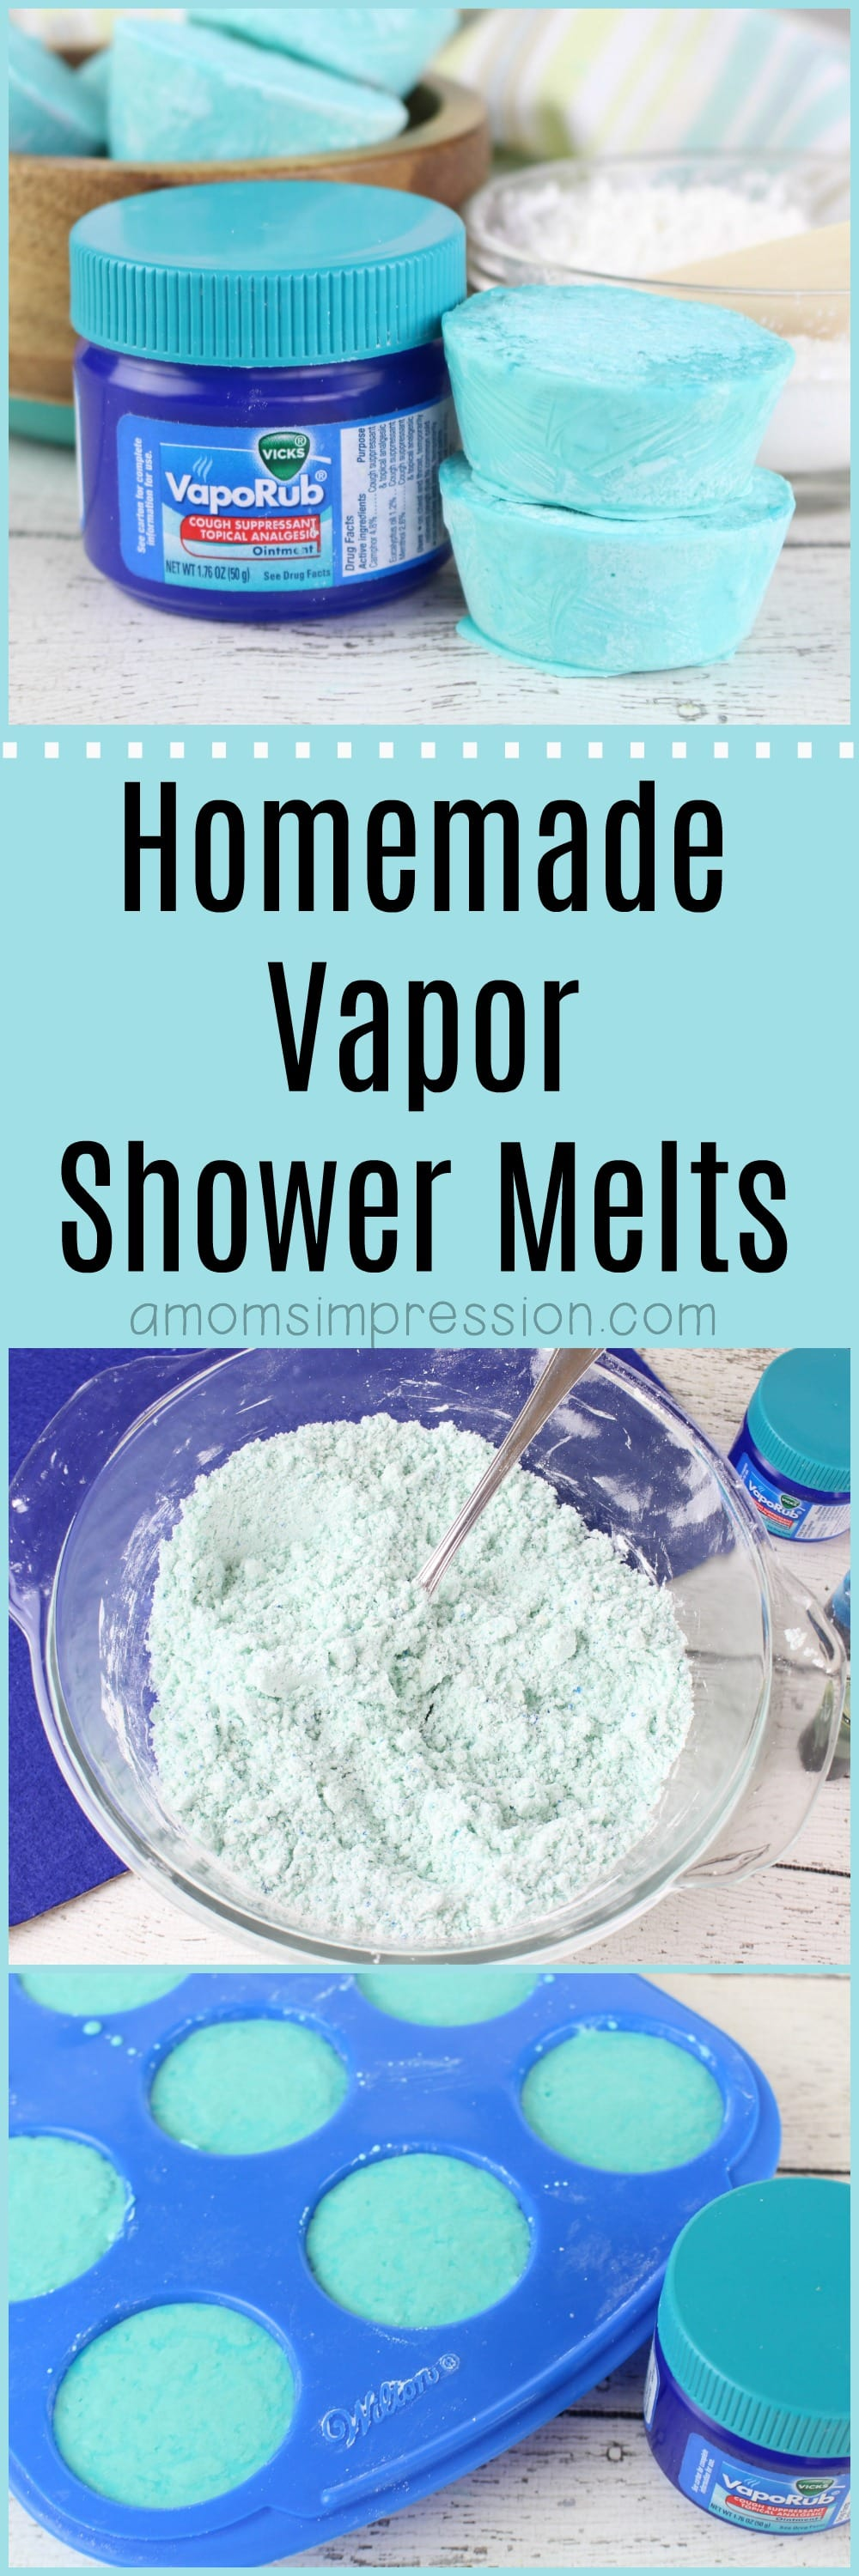 Love the discontinued Vicks shower melts? Make your own with this DIY vapor shower melts recipe. This recipe is without citric acid and uses vapor rub giving your shower the eucalyptus smell that is perfect for those of us who suffer from allergies or sinus pressure.